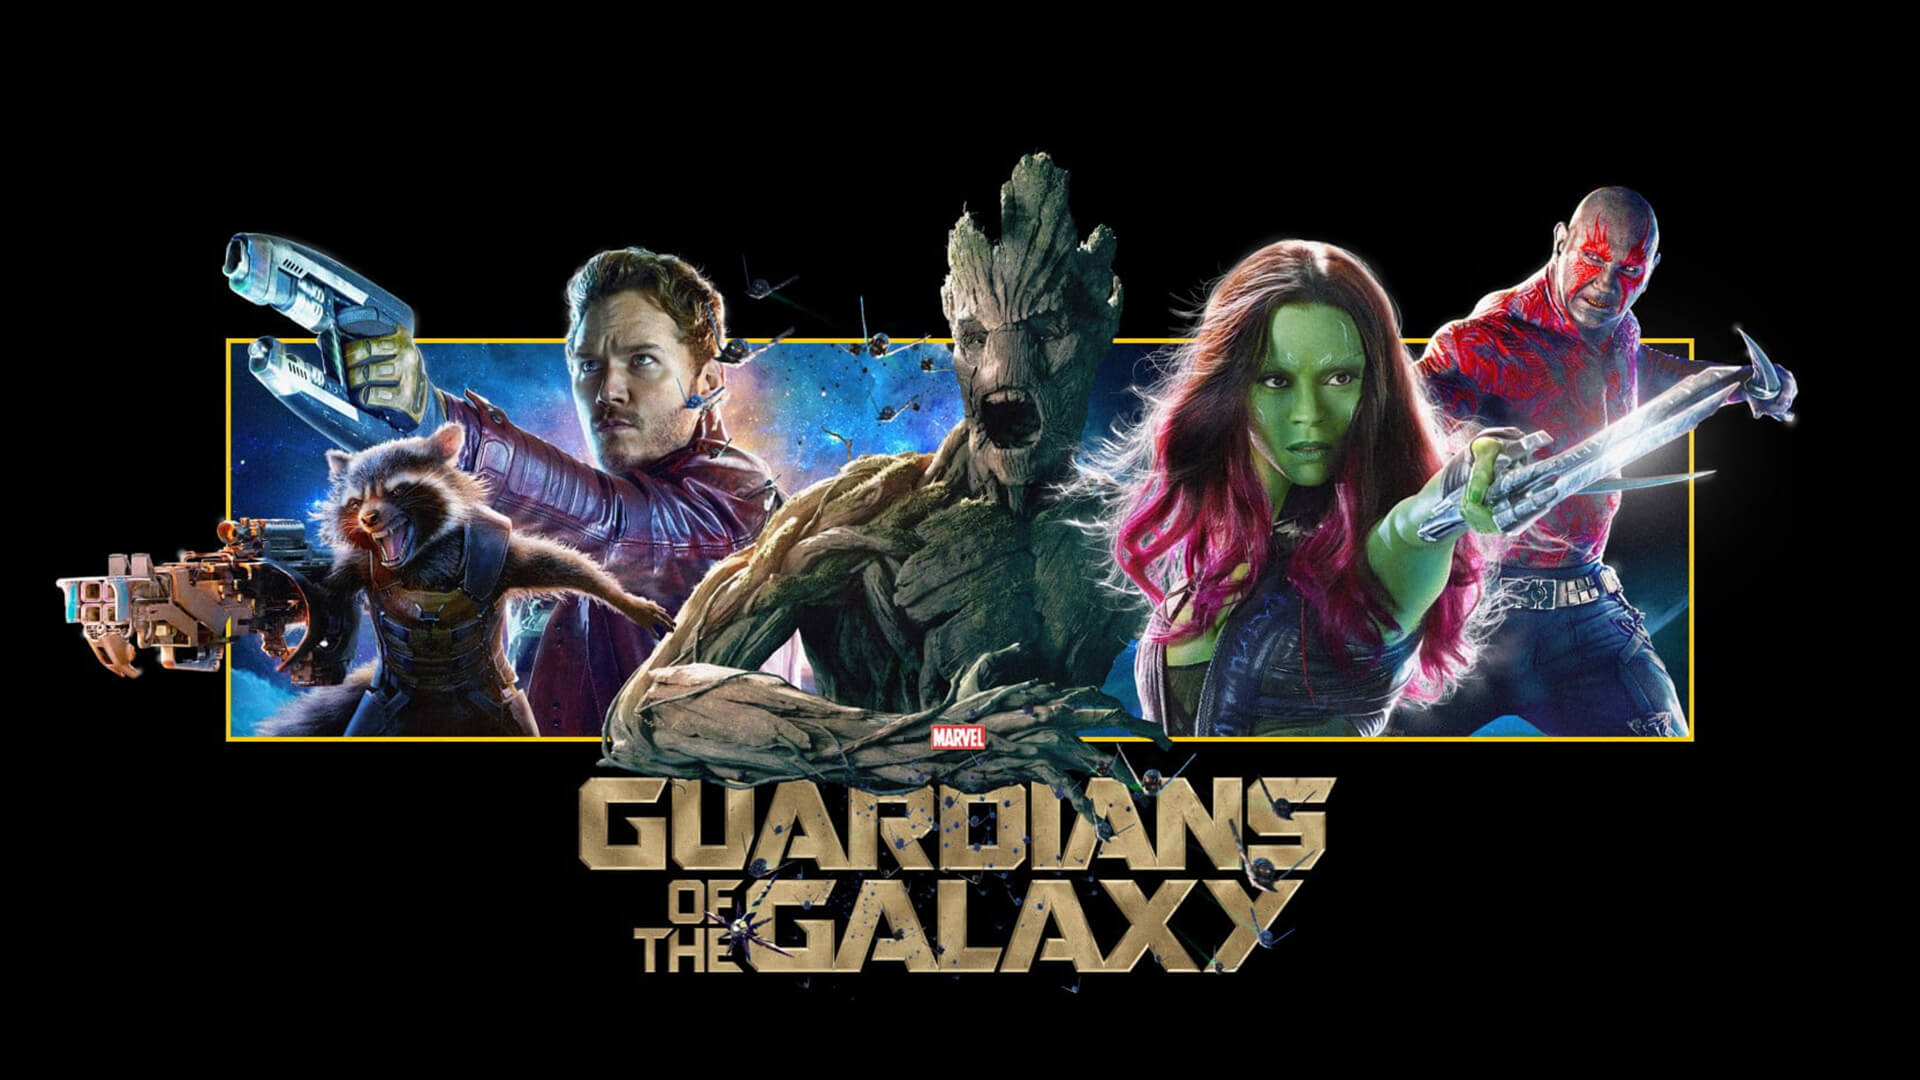 Guardians of the galaxy, movie